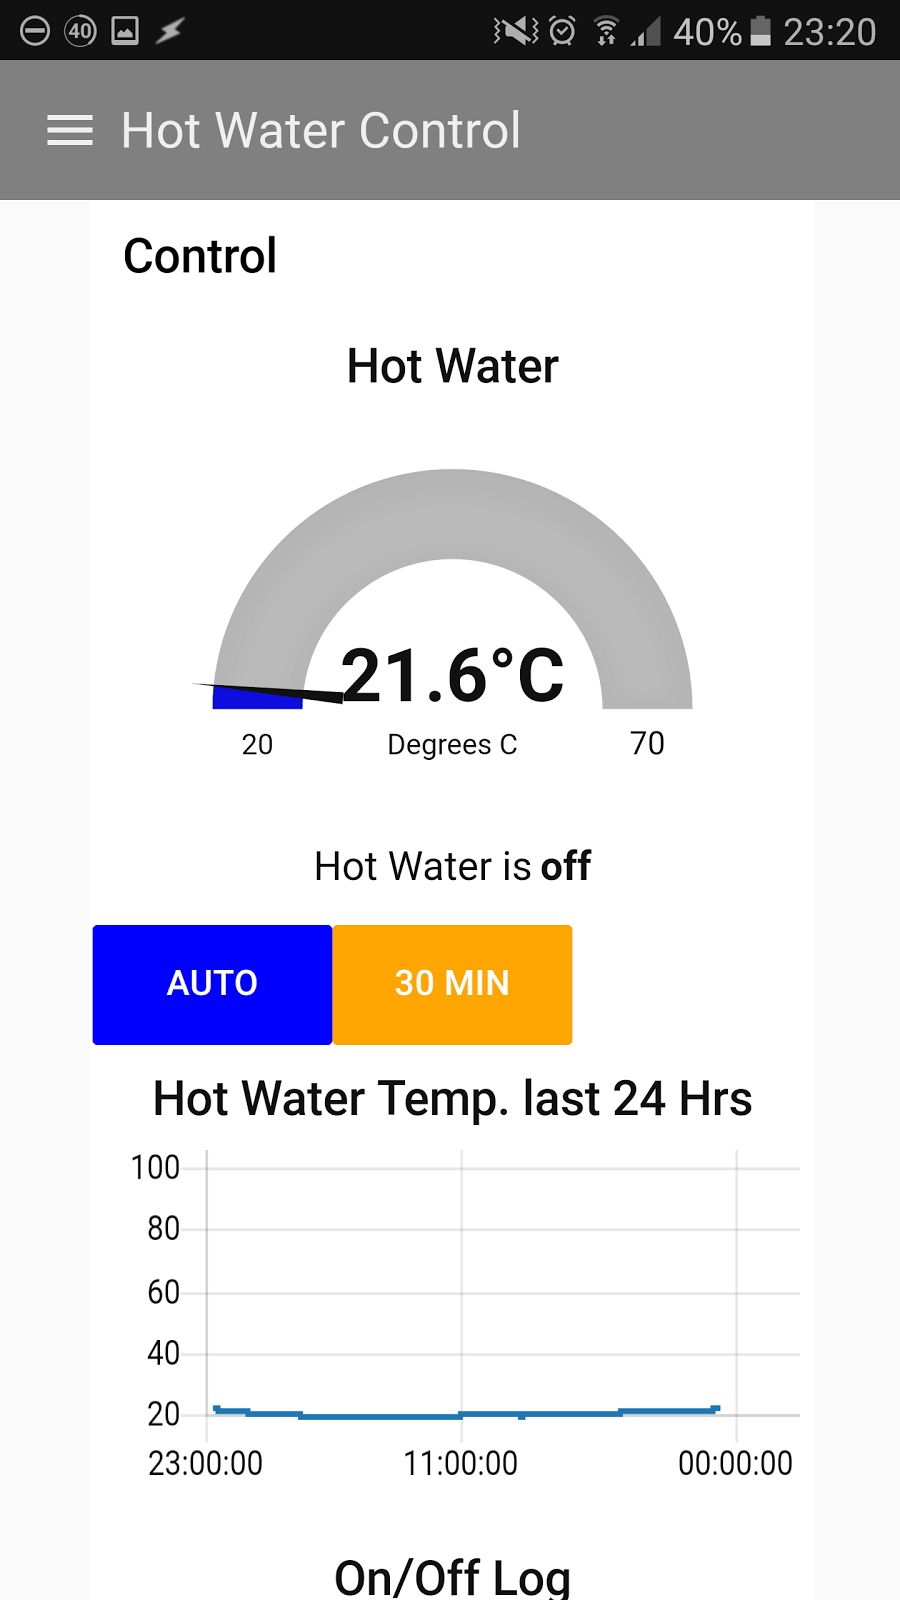 Gadjet's Blog: Hot water Remote Control using a Wemos D1      then a